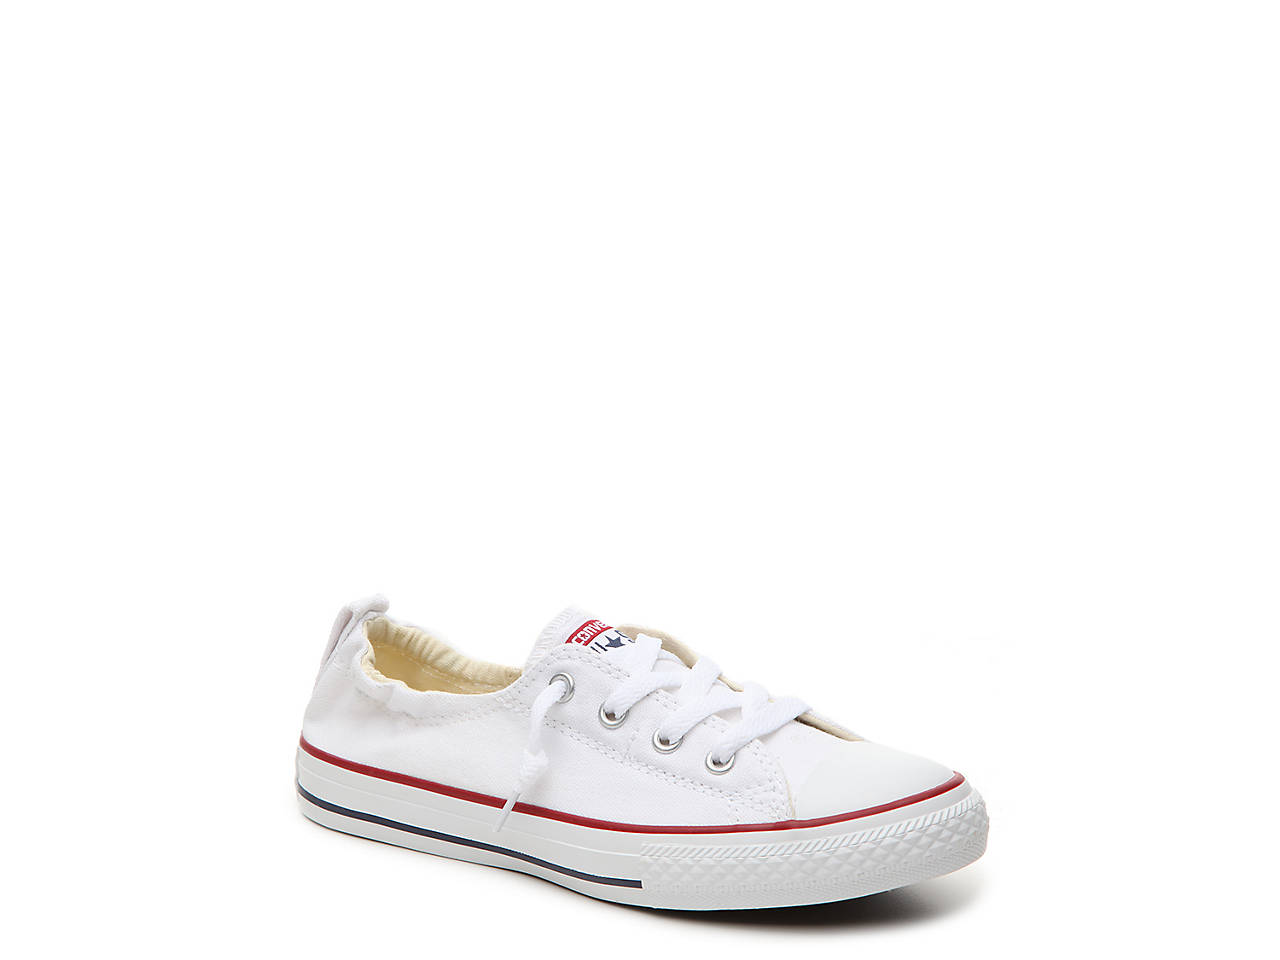 9127eefccfd750 Converse Chuck Taylor All Star Shoreline Toddler   Youth Slip-On ...